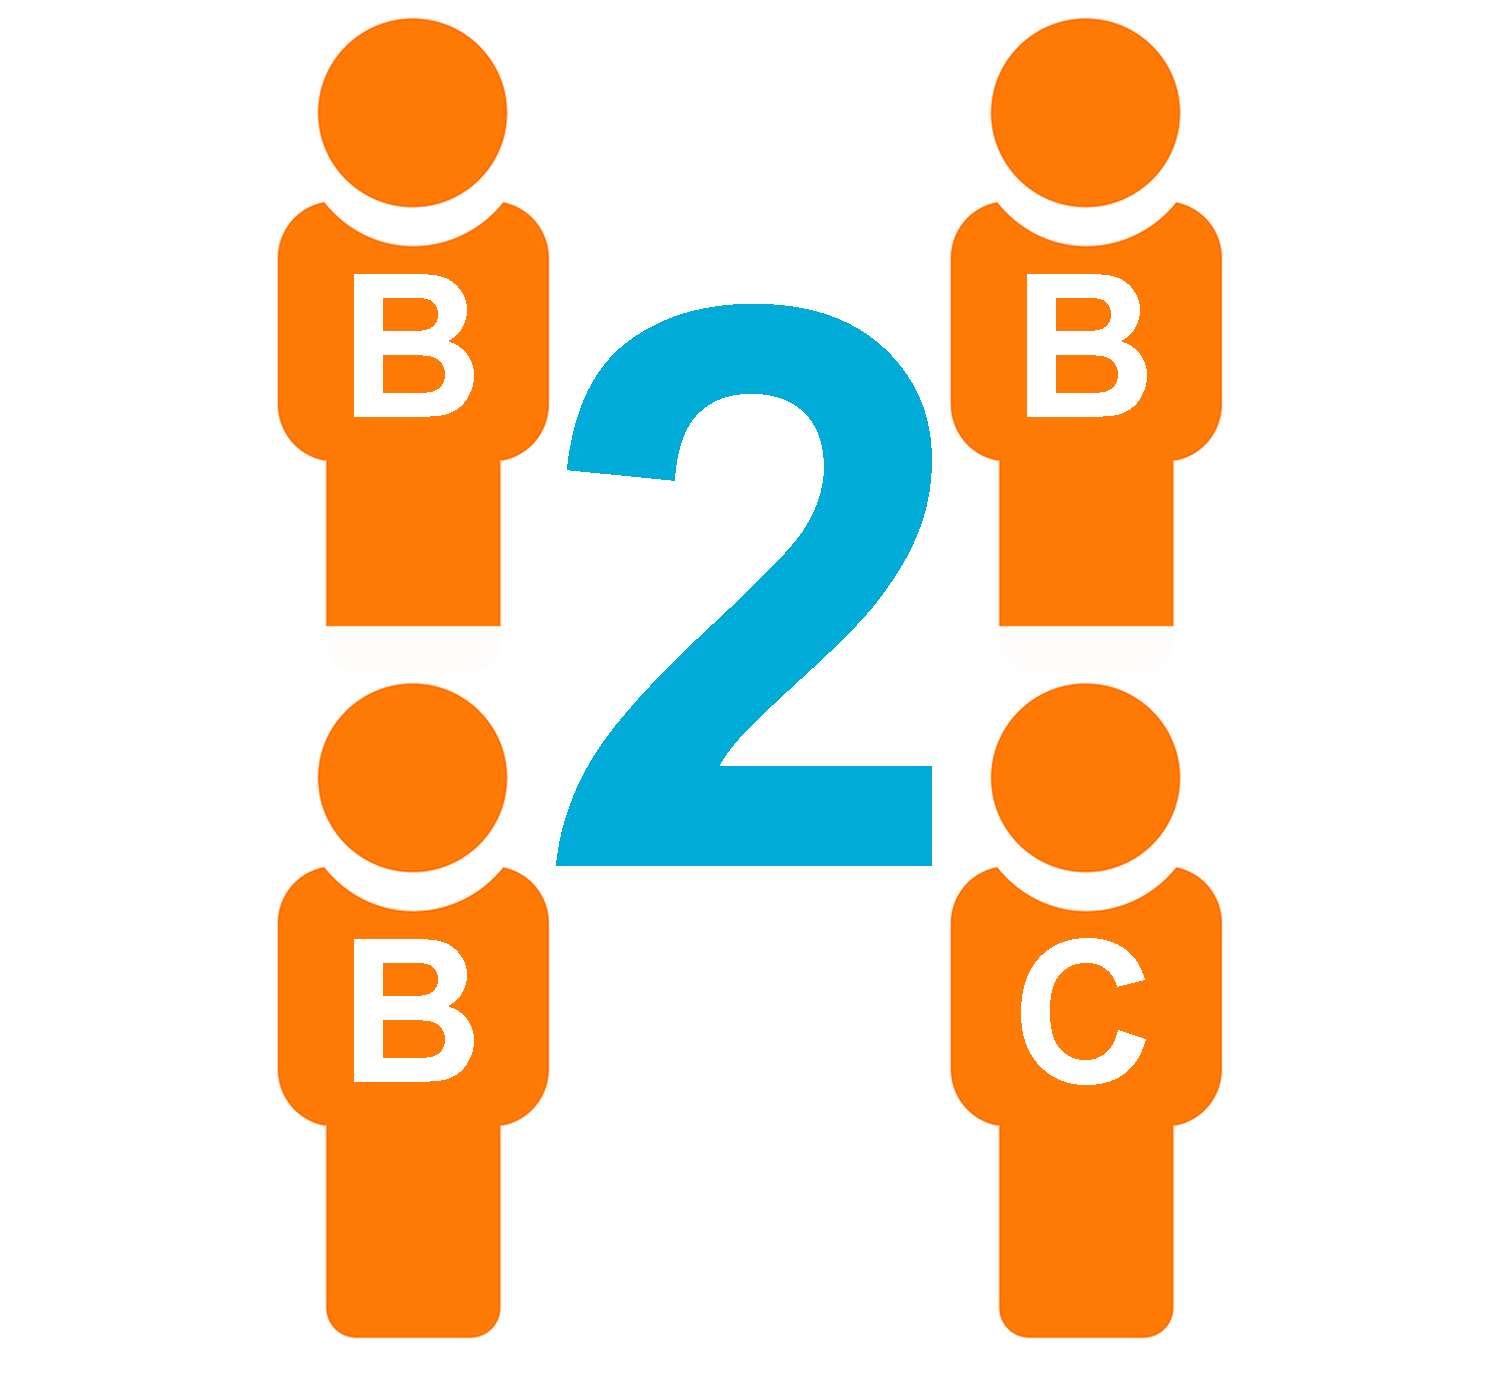 define and describe the differences between b2b and b2b2c